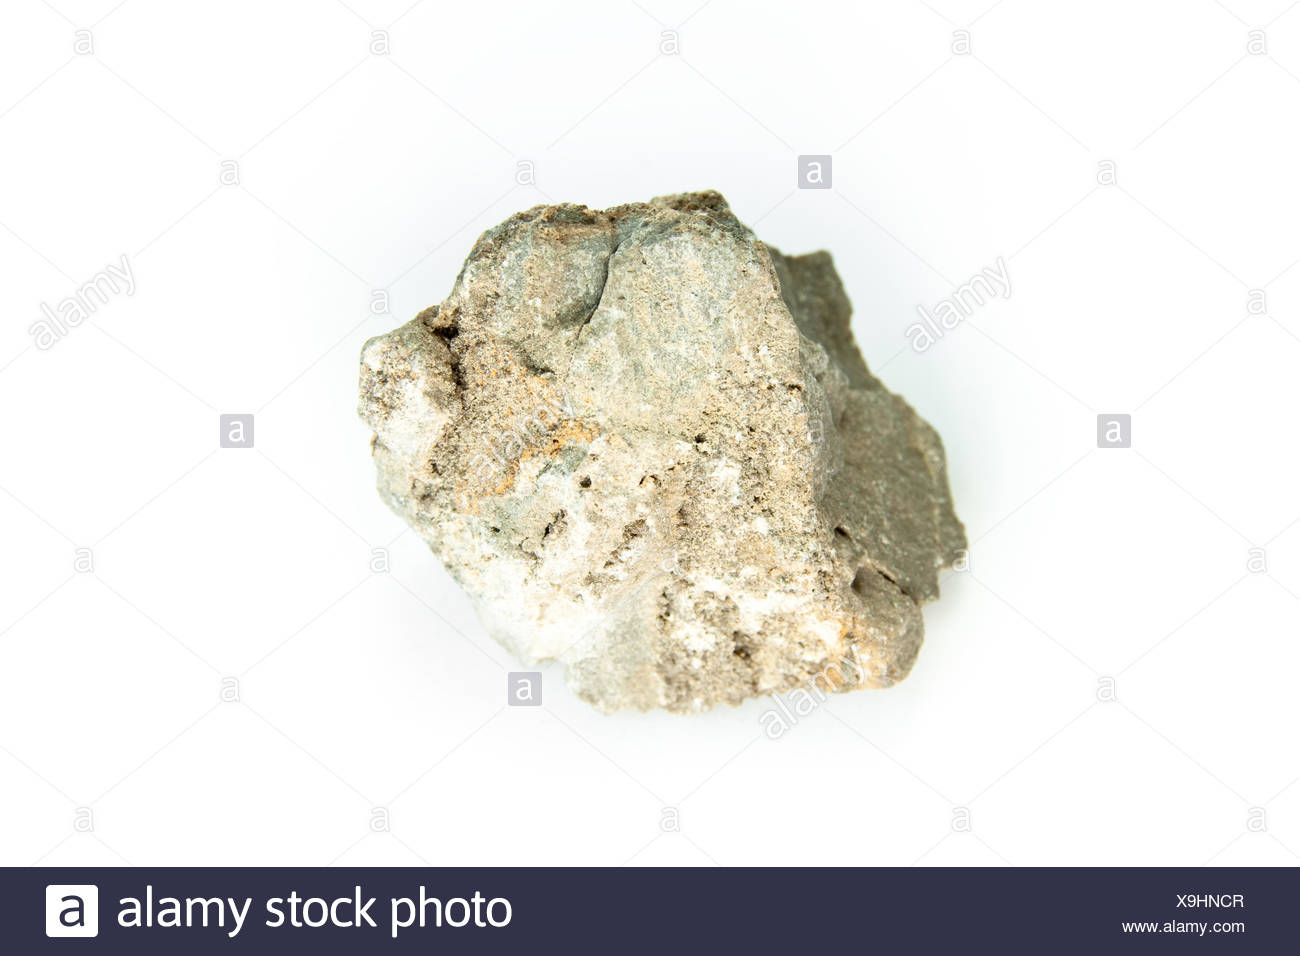 macro, close-up, macro admission, close up view, detail, isolated, stone, rock, - Stock Image